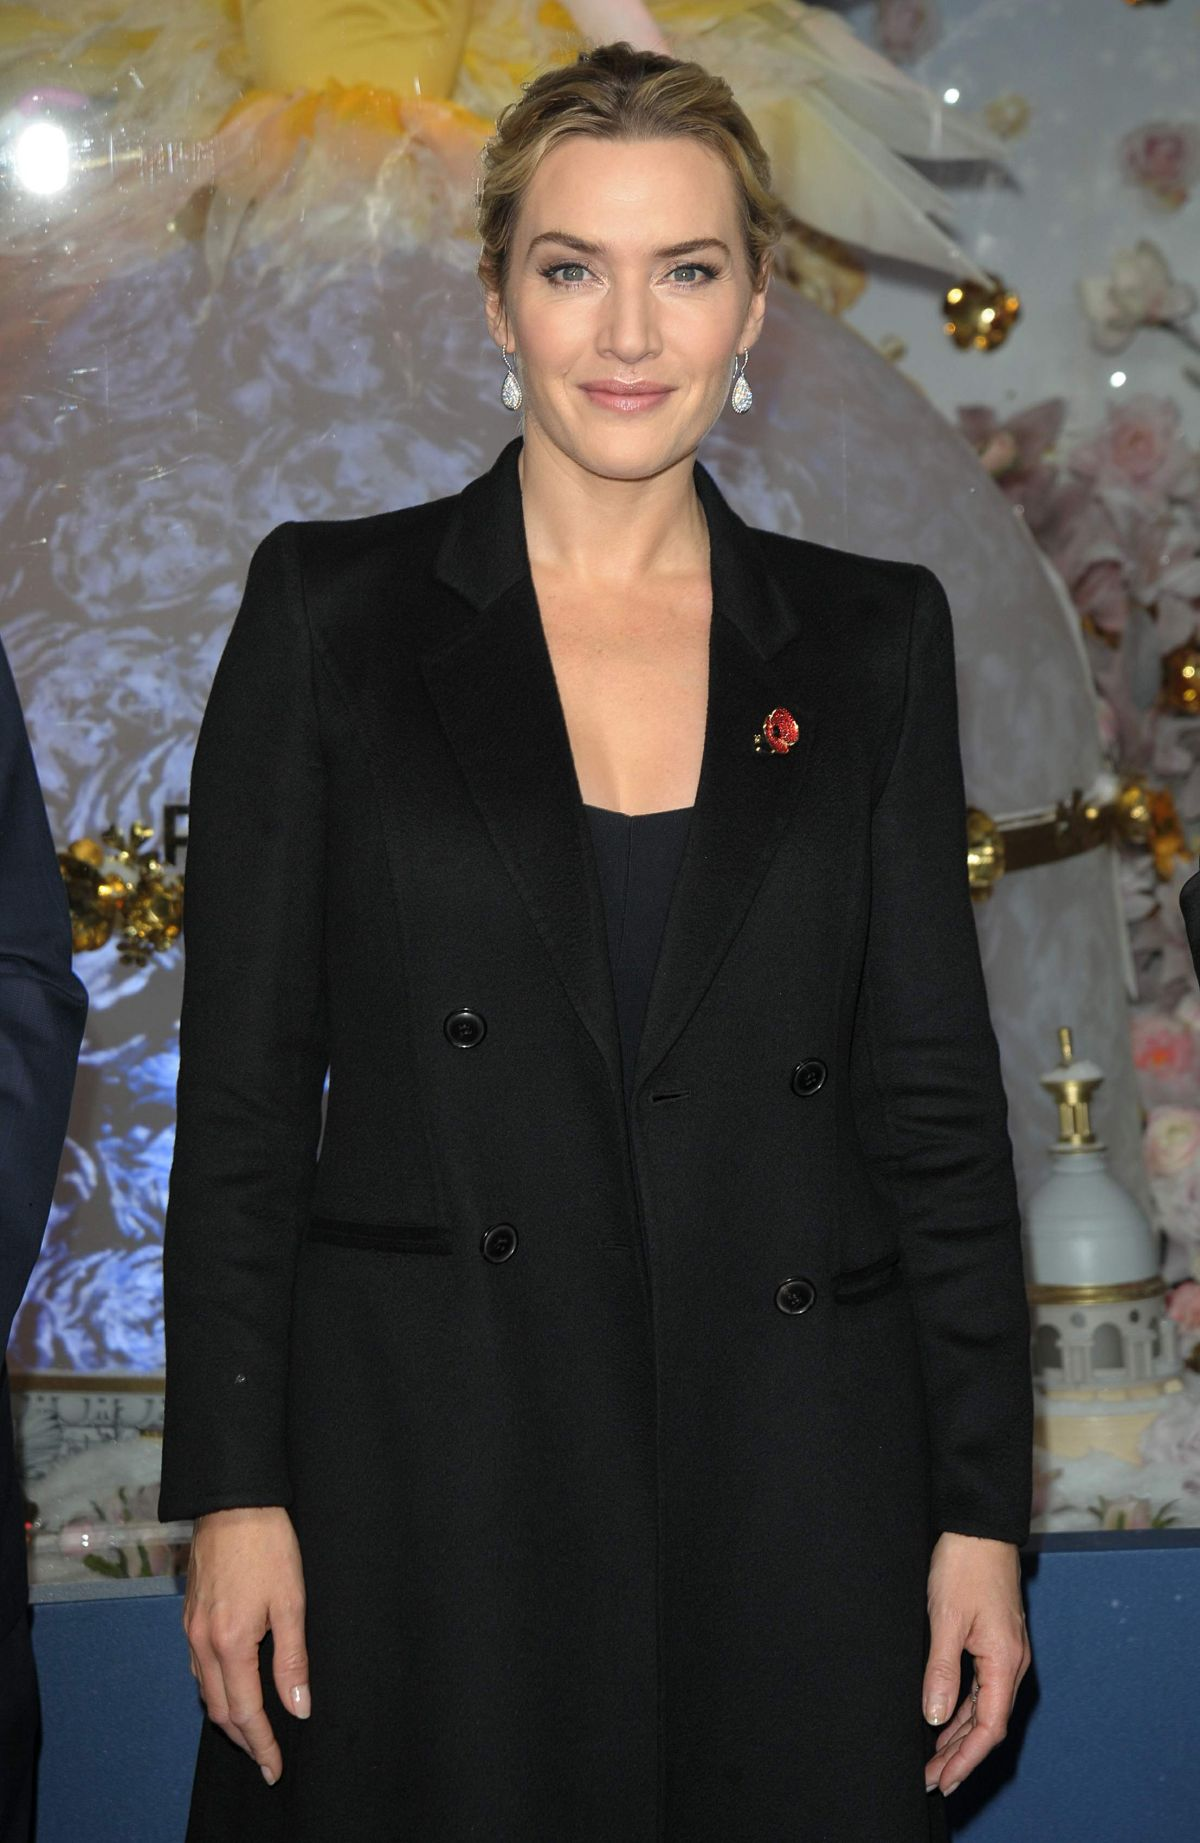 KATE WINSLET at Opening The Christmas Shopping Window 11/06/2015